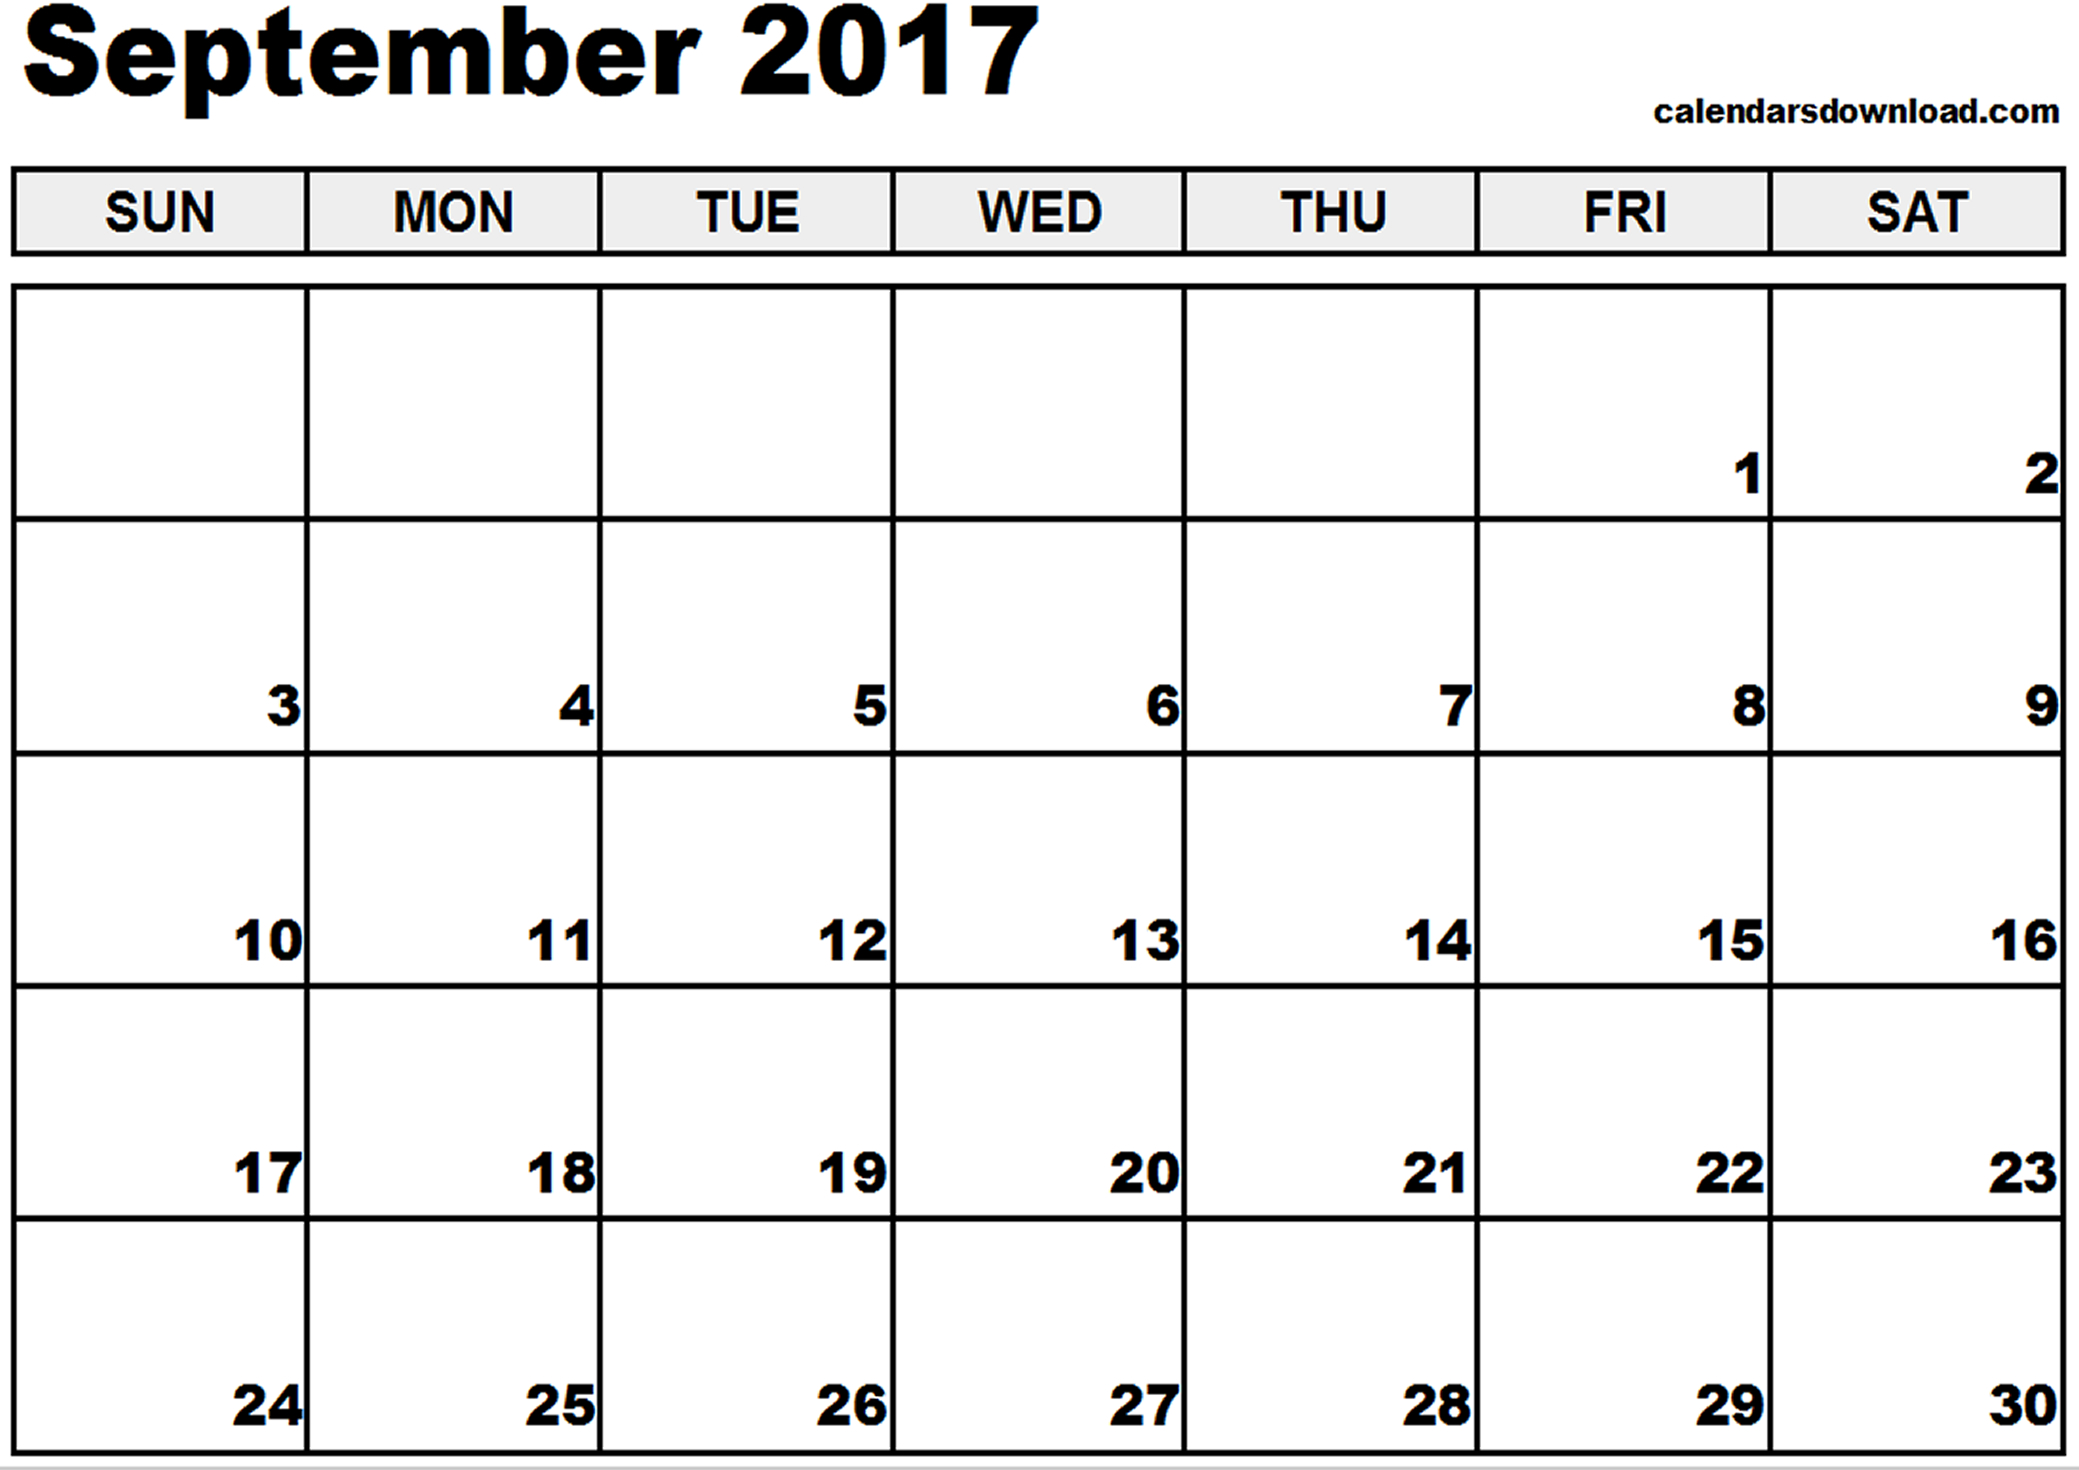 September 2017 Calendar | weekly calendar template